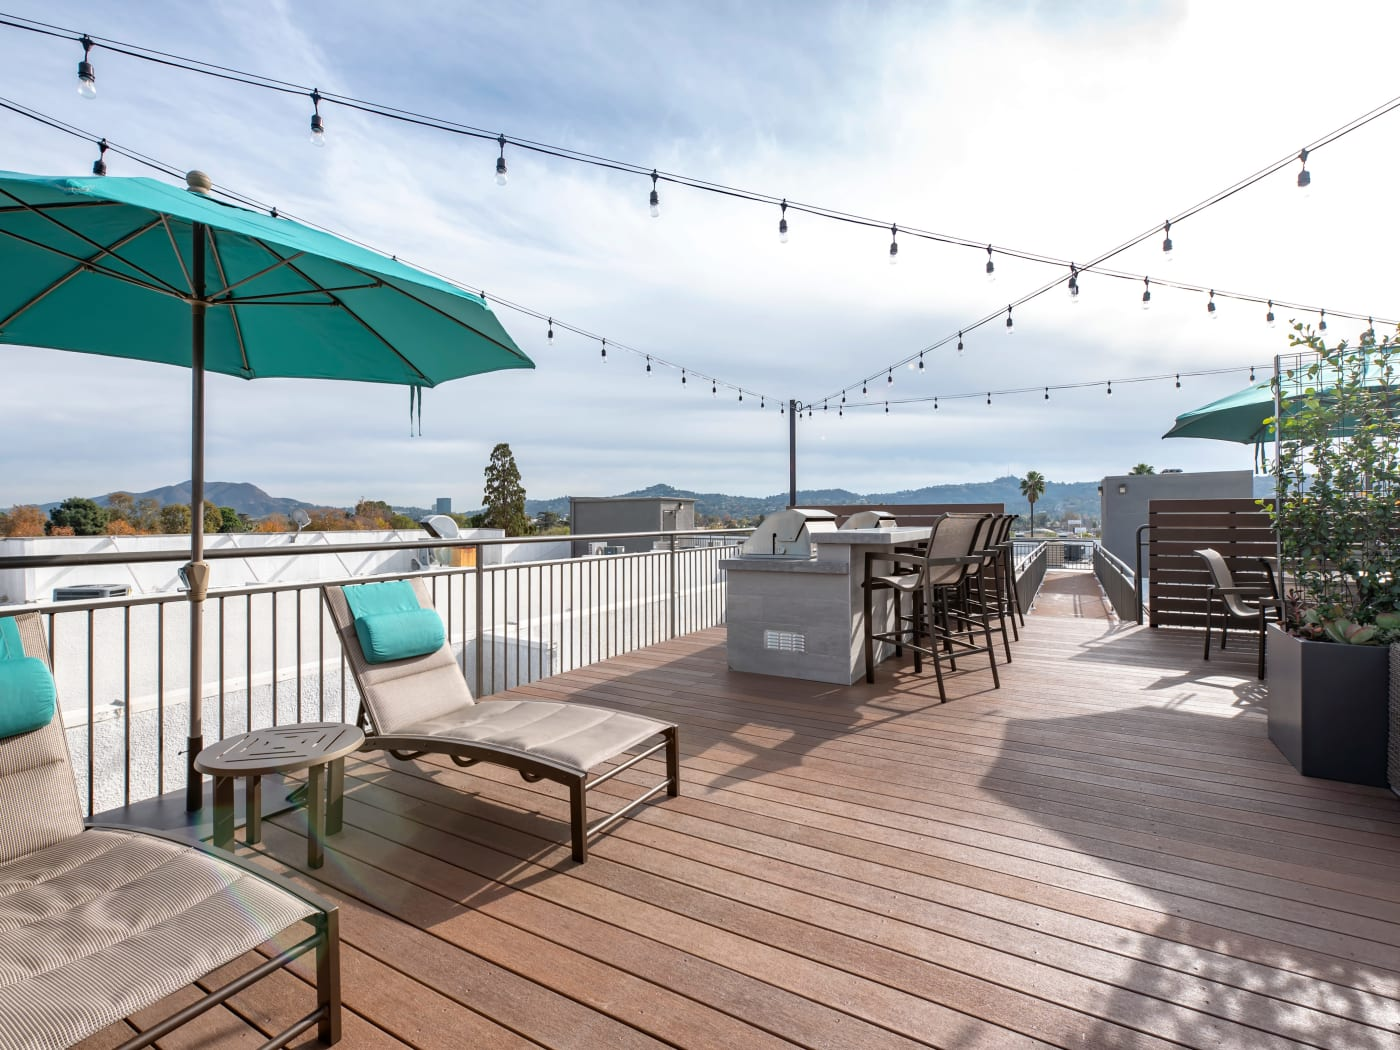 Upstairs balcony at Vue at Laurel Canyon in Valley Village, California